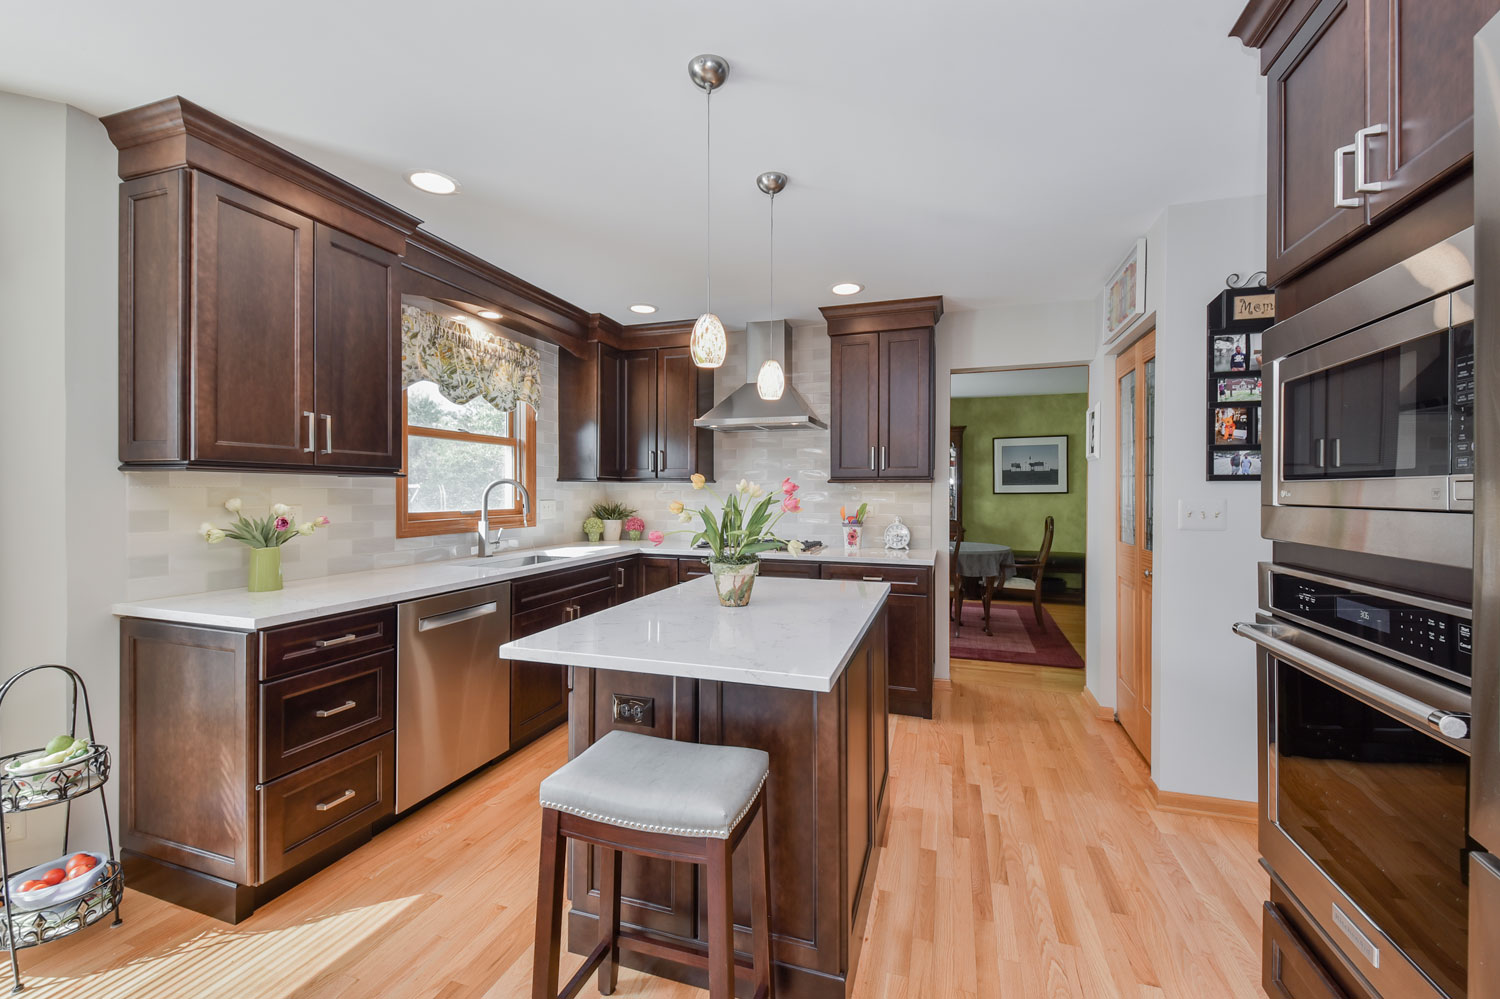 Sue & Russell's Kitchen Remodel Pictures | Home Remodeling ...